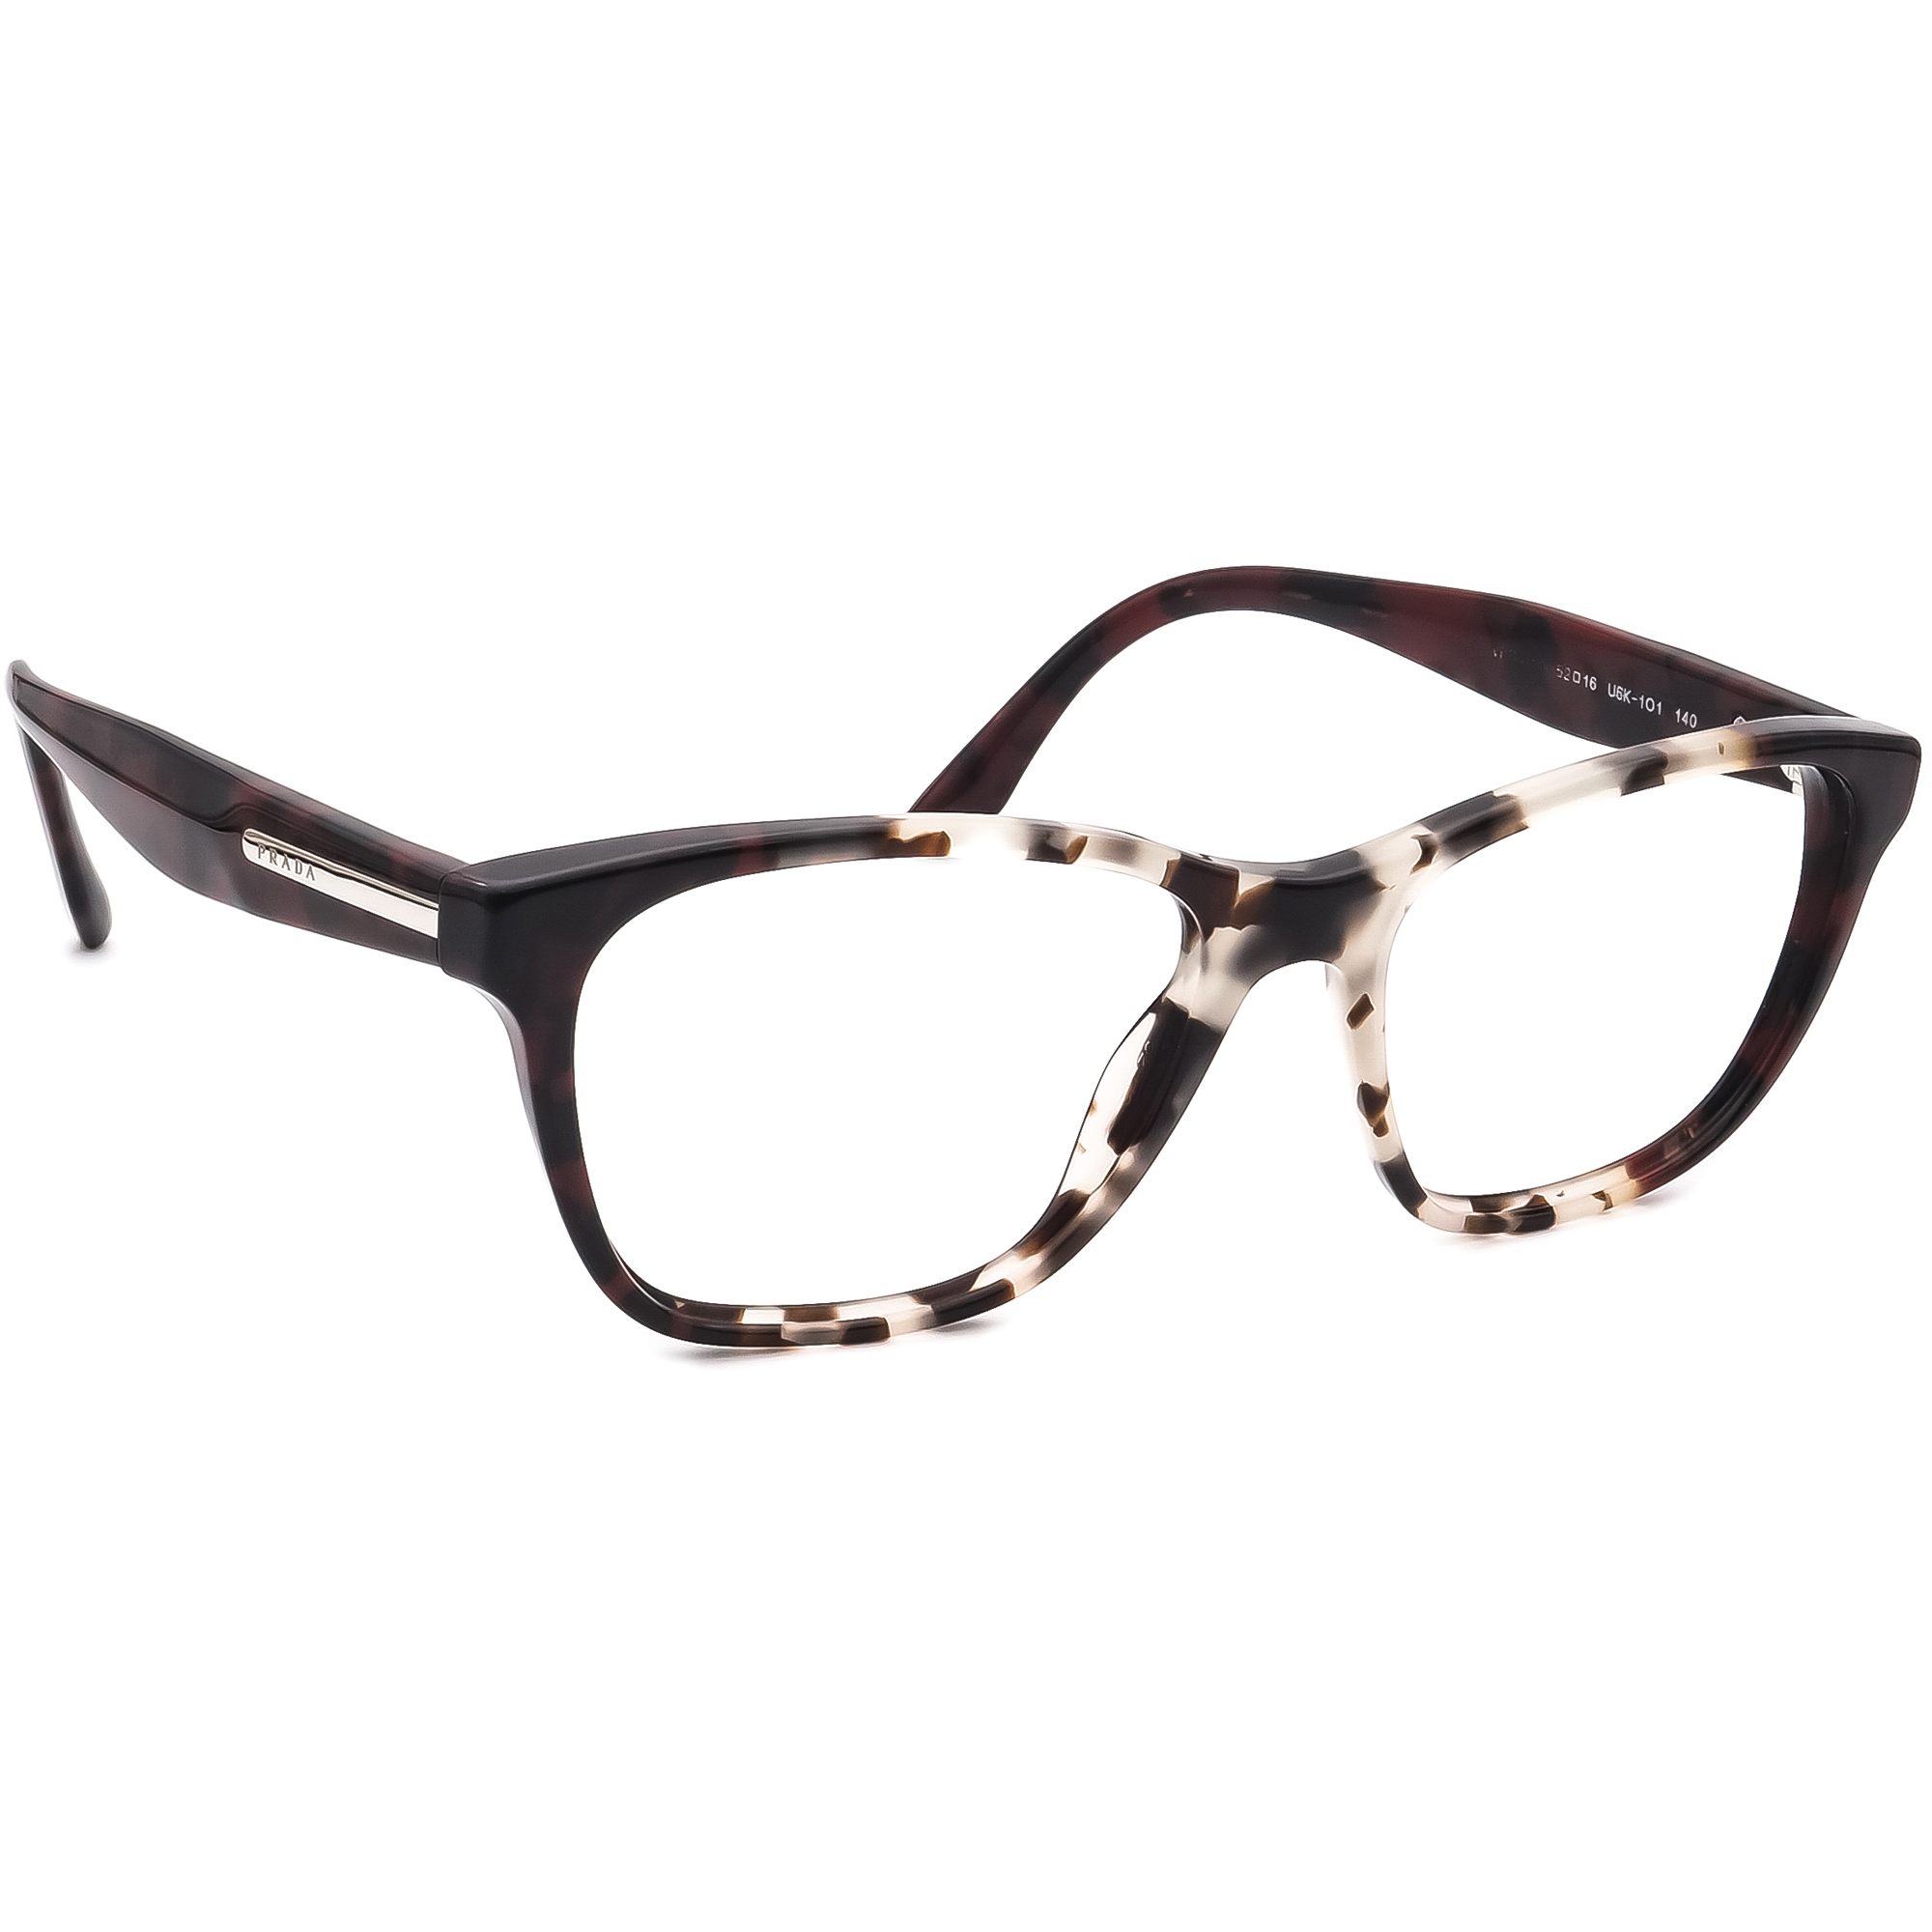 Prada Eyeglasses Journal VPR04T U6K-1O1 Spotted Brown Red Frame Italy 52-16 140